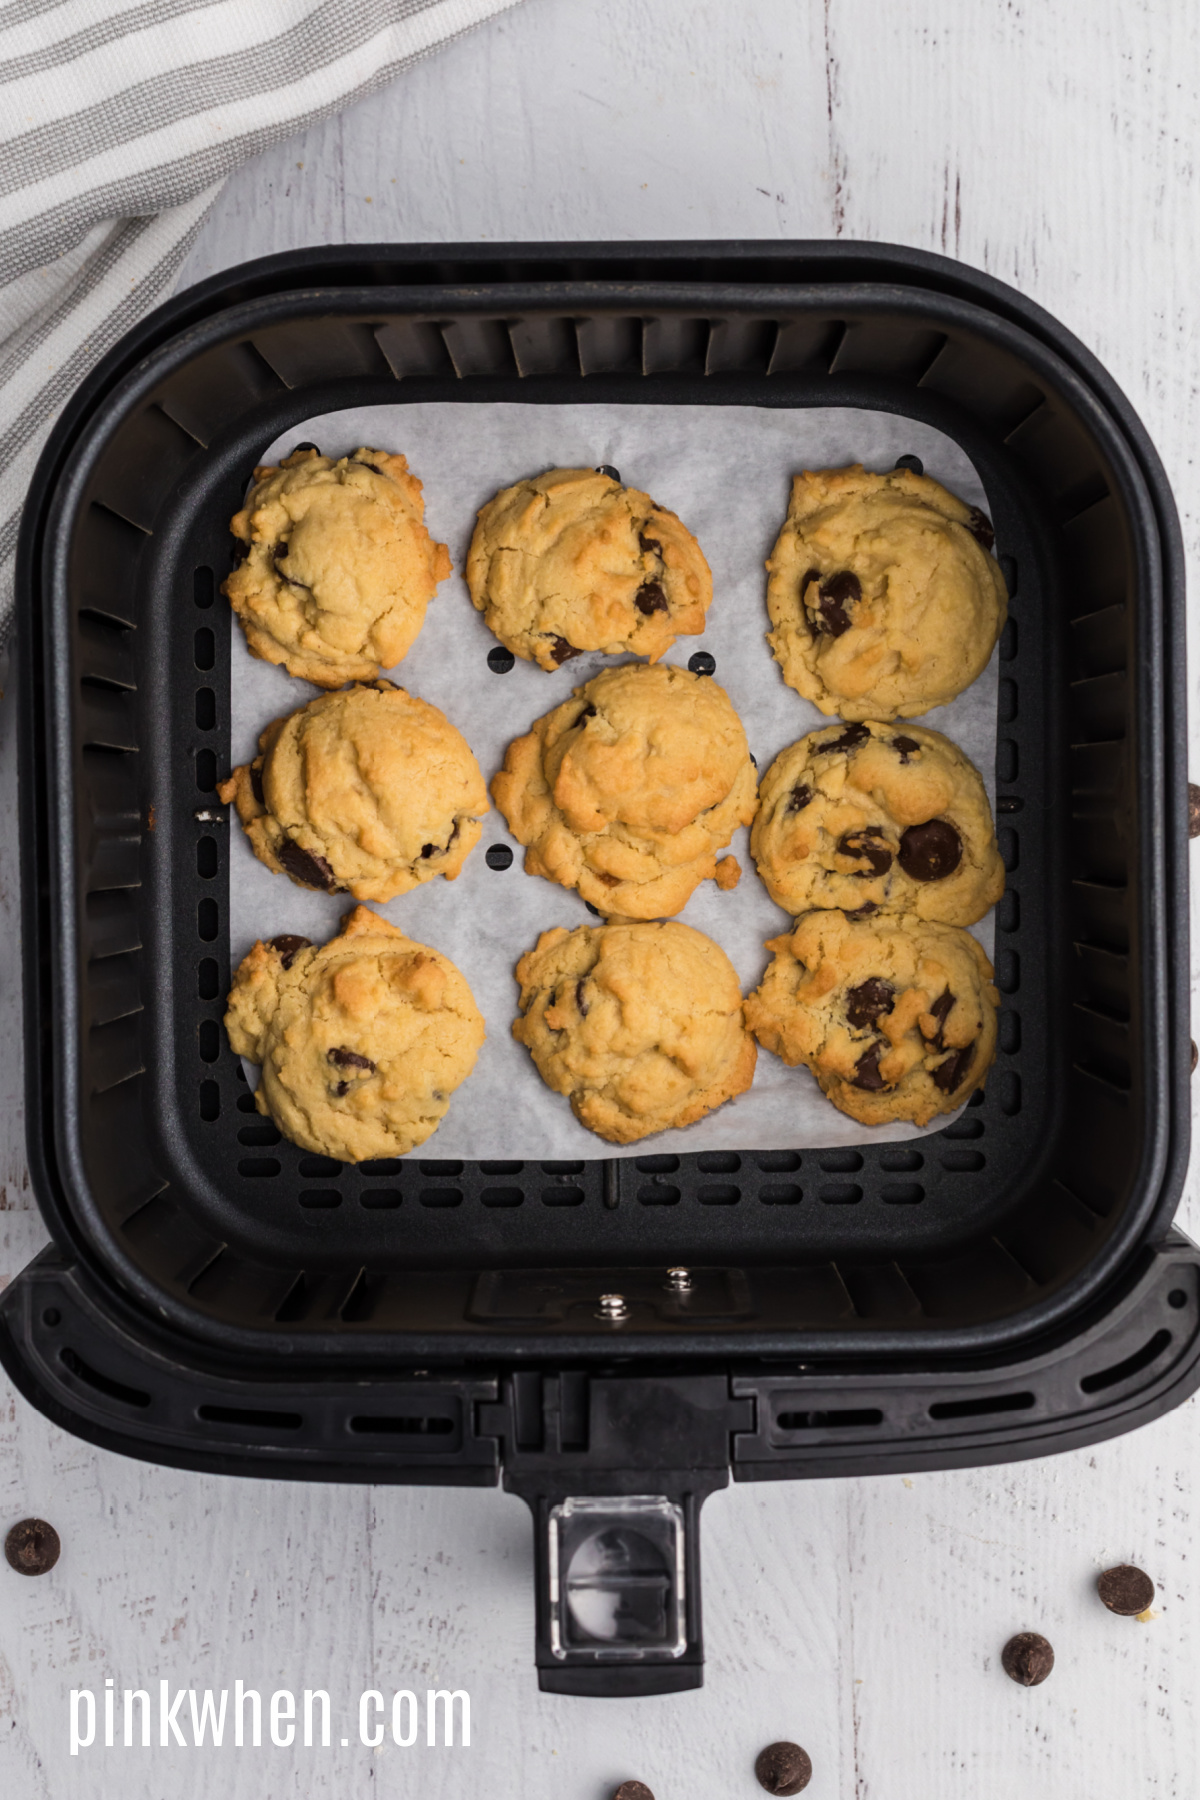 Cookies fully cooked in the basket of the air fryer.